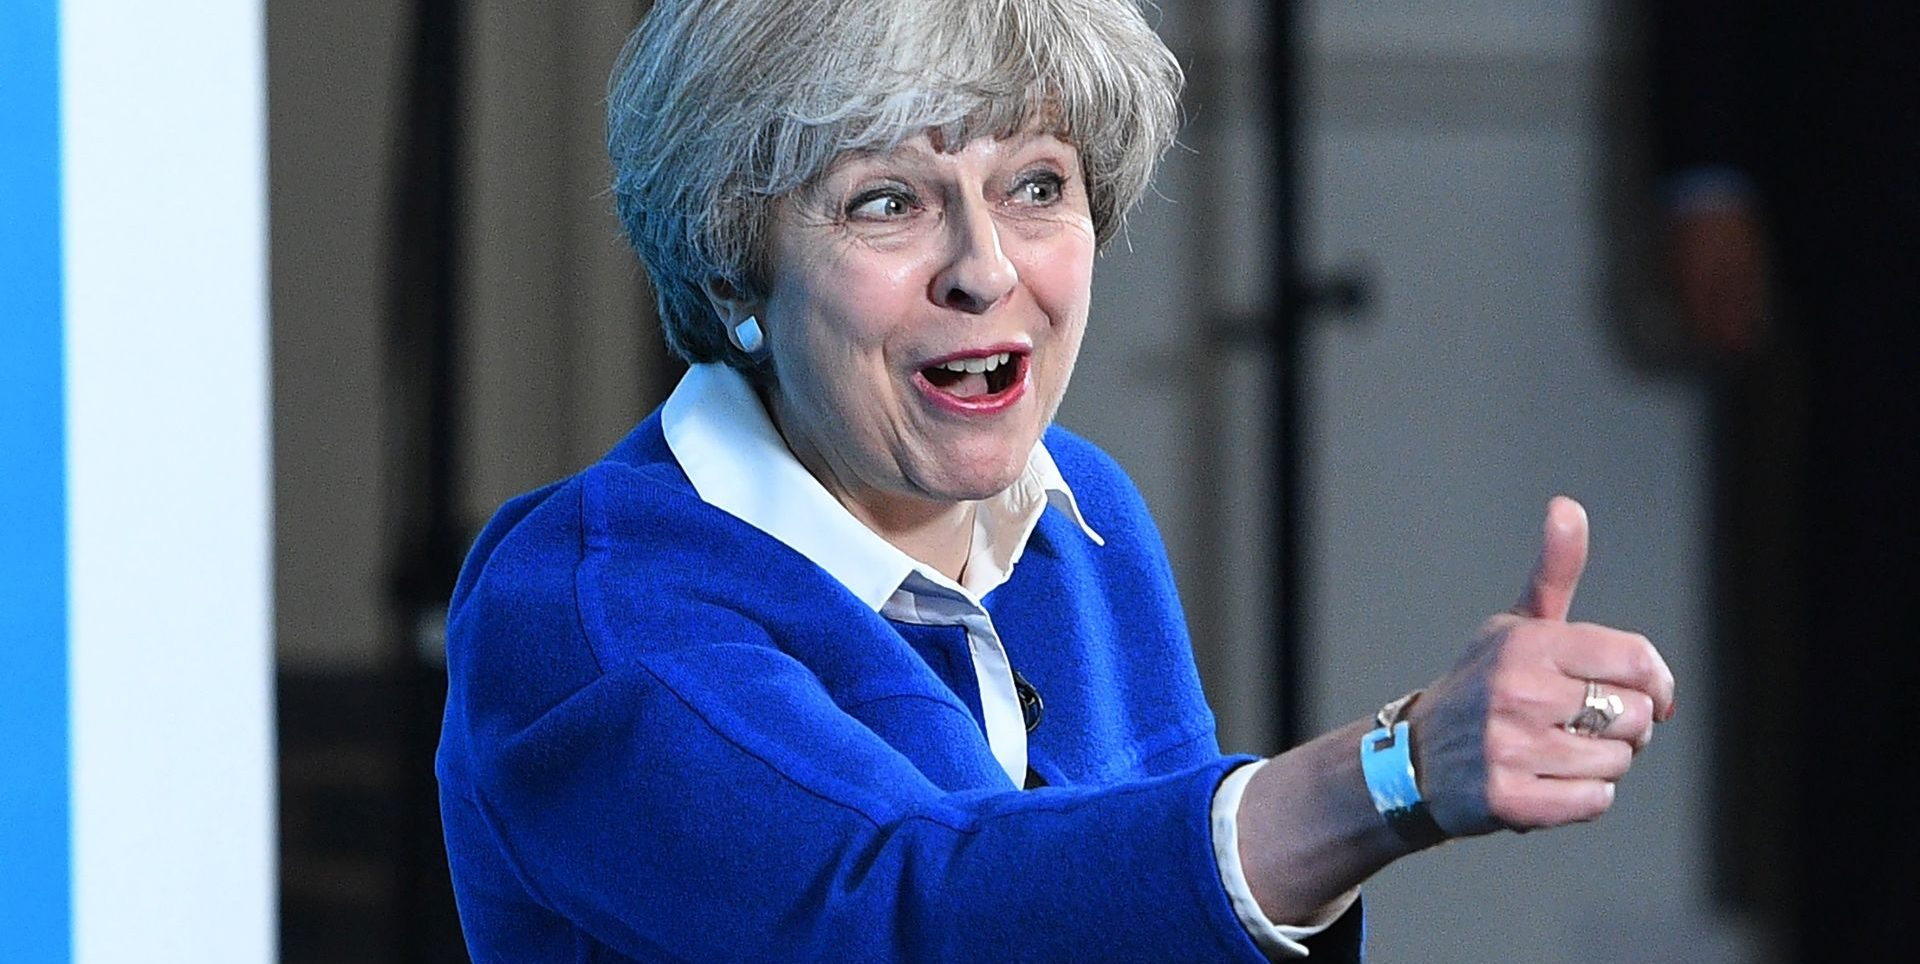 Theresa May predstavila svoju novu vladu